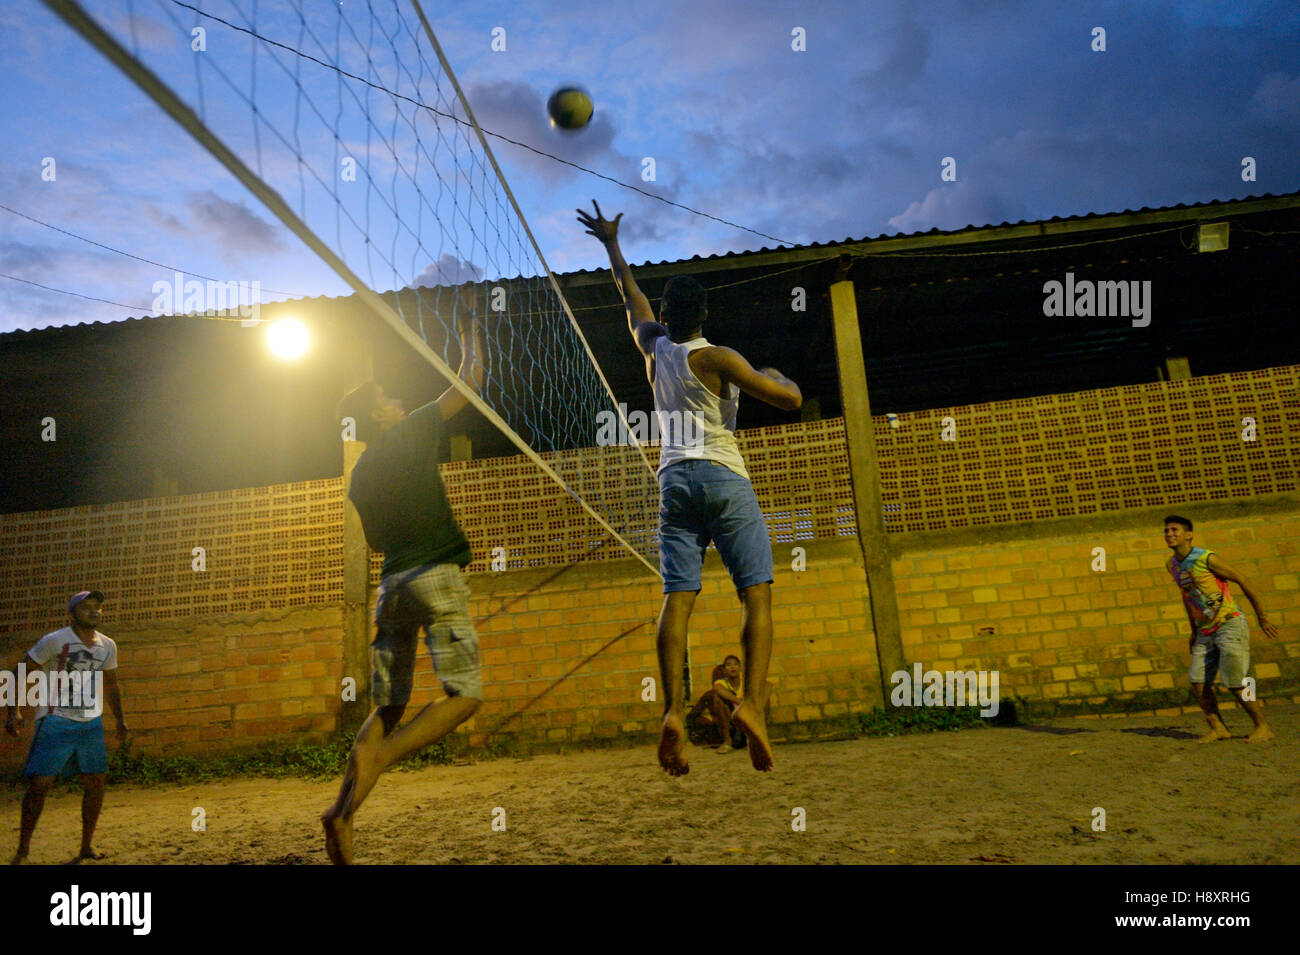 Young people playing volleyball, evening, Trinta, Itaituba District, Pará, Brazil - Stock Image